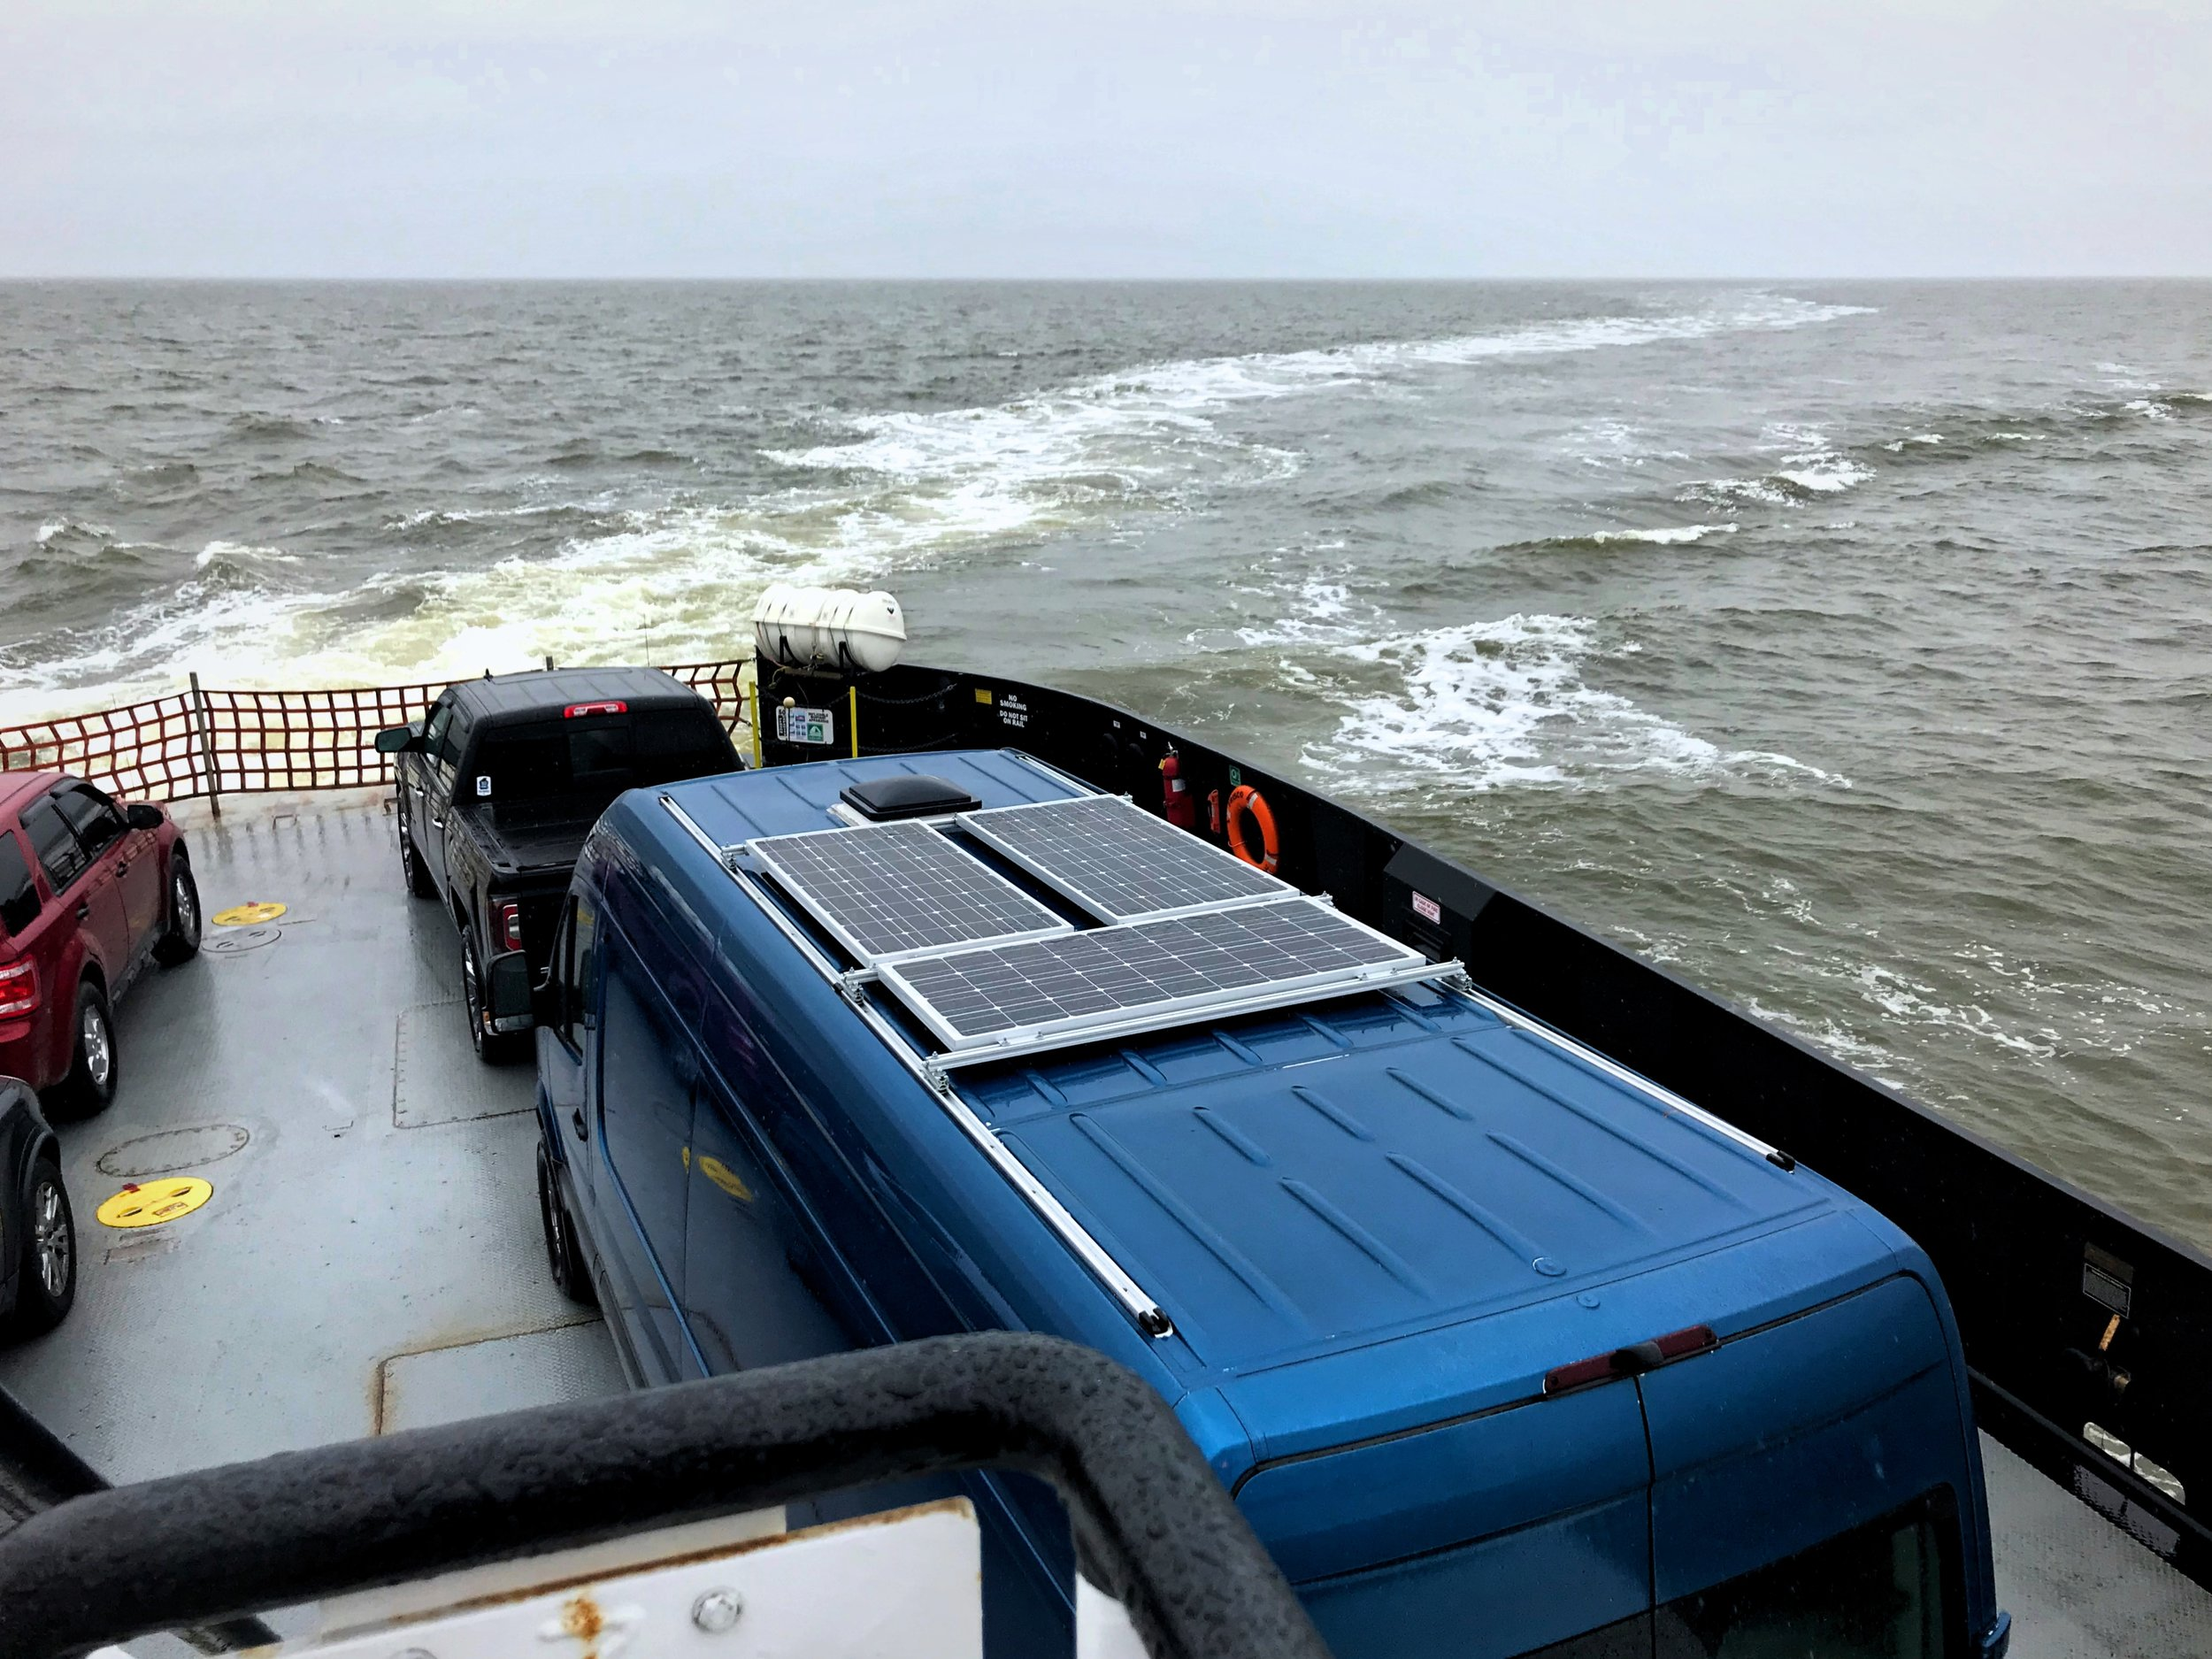 We took our van on a ferry for the first time in the Outer Banks of North Carolina.